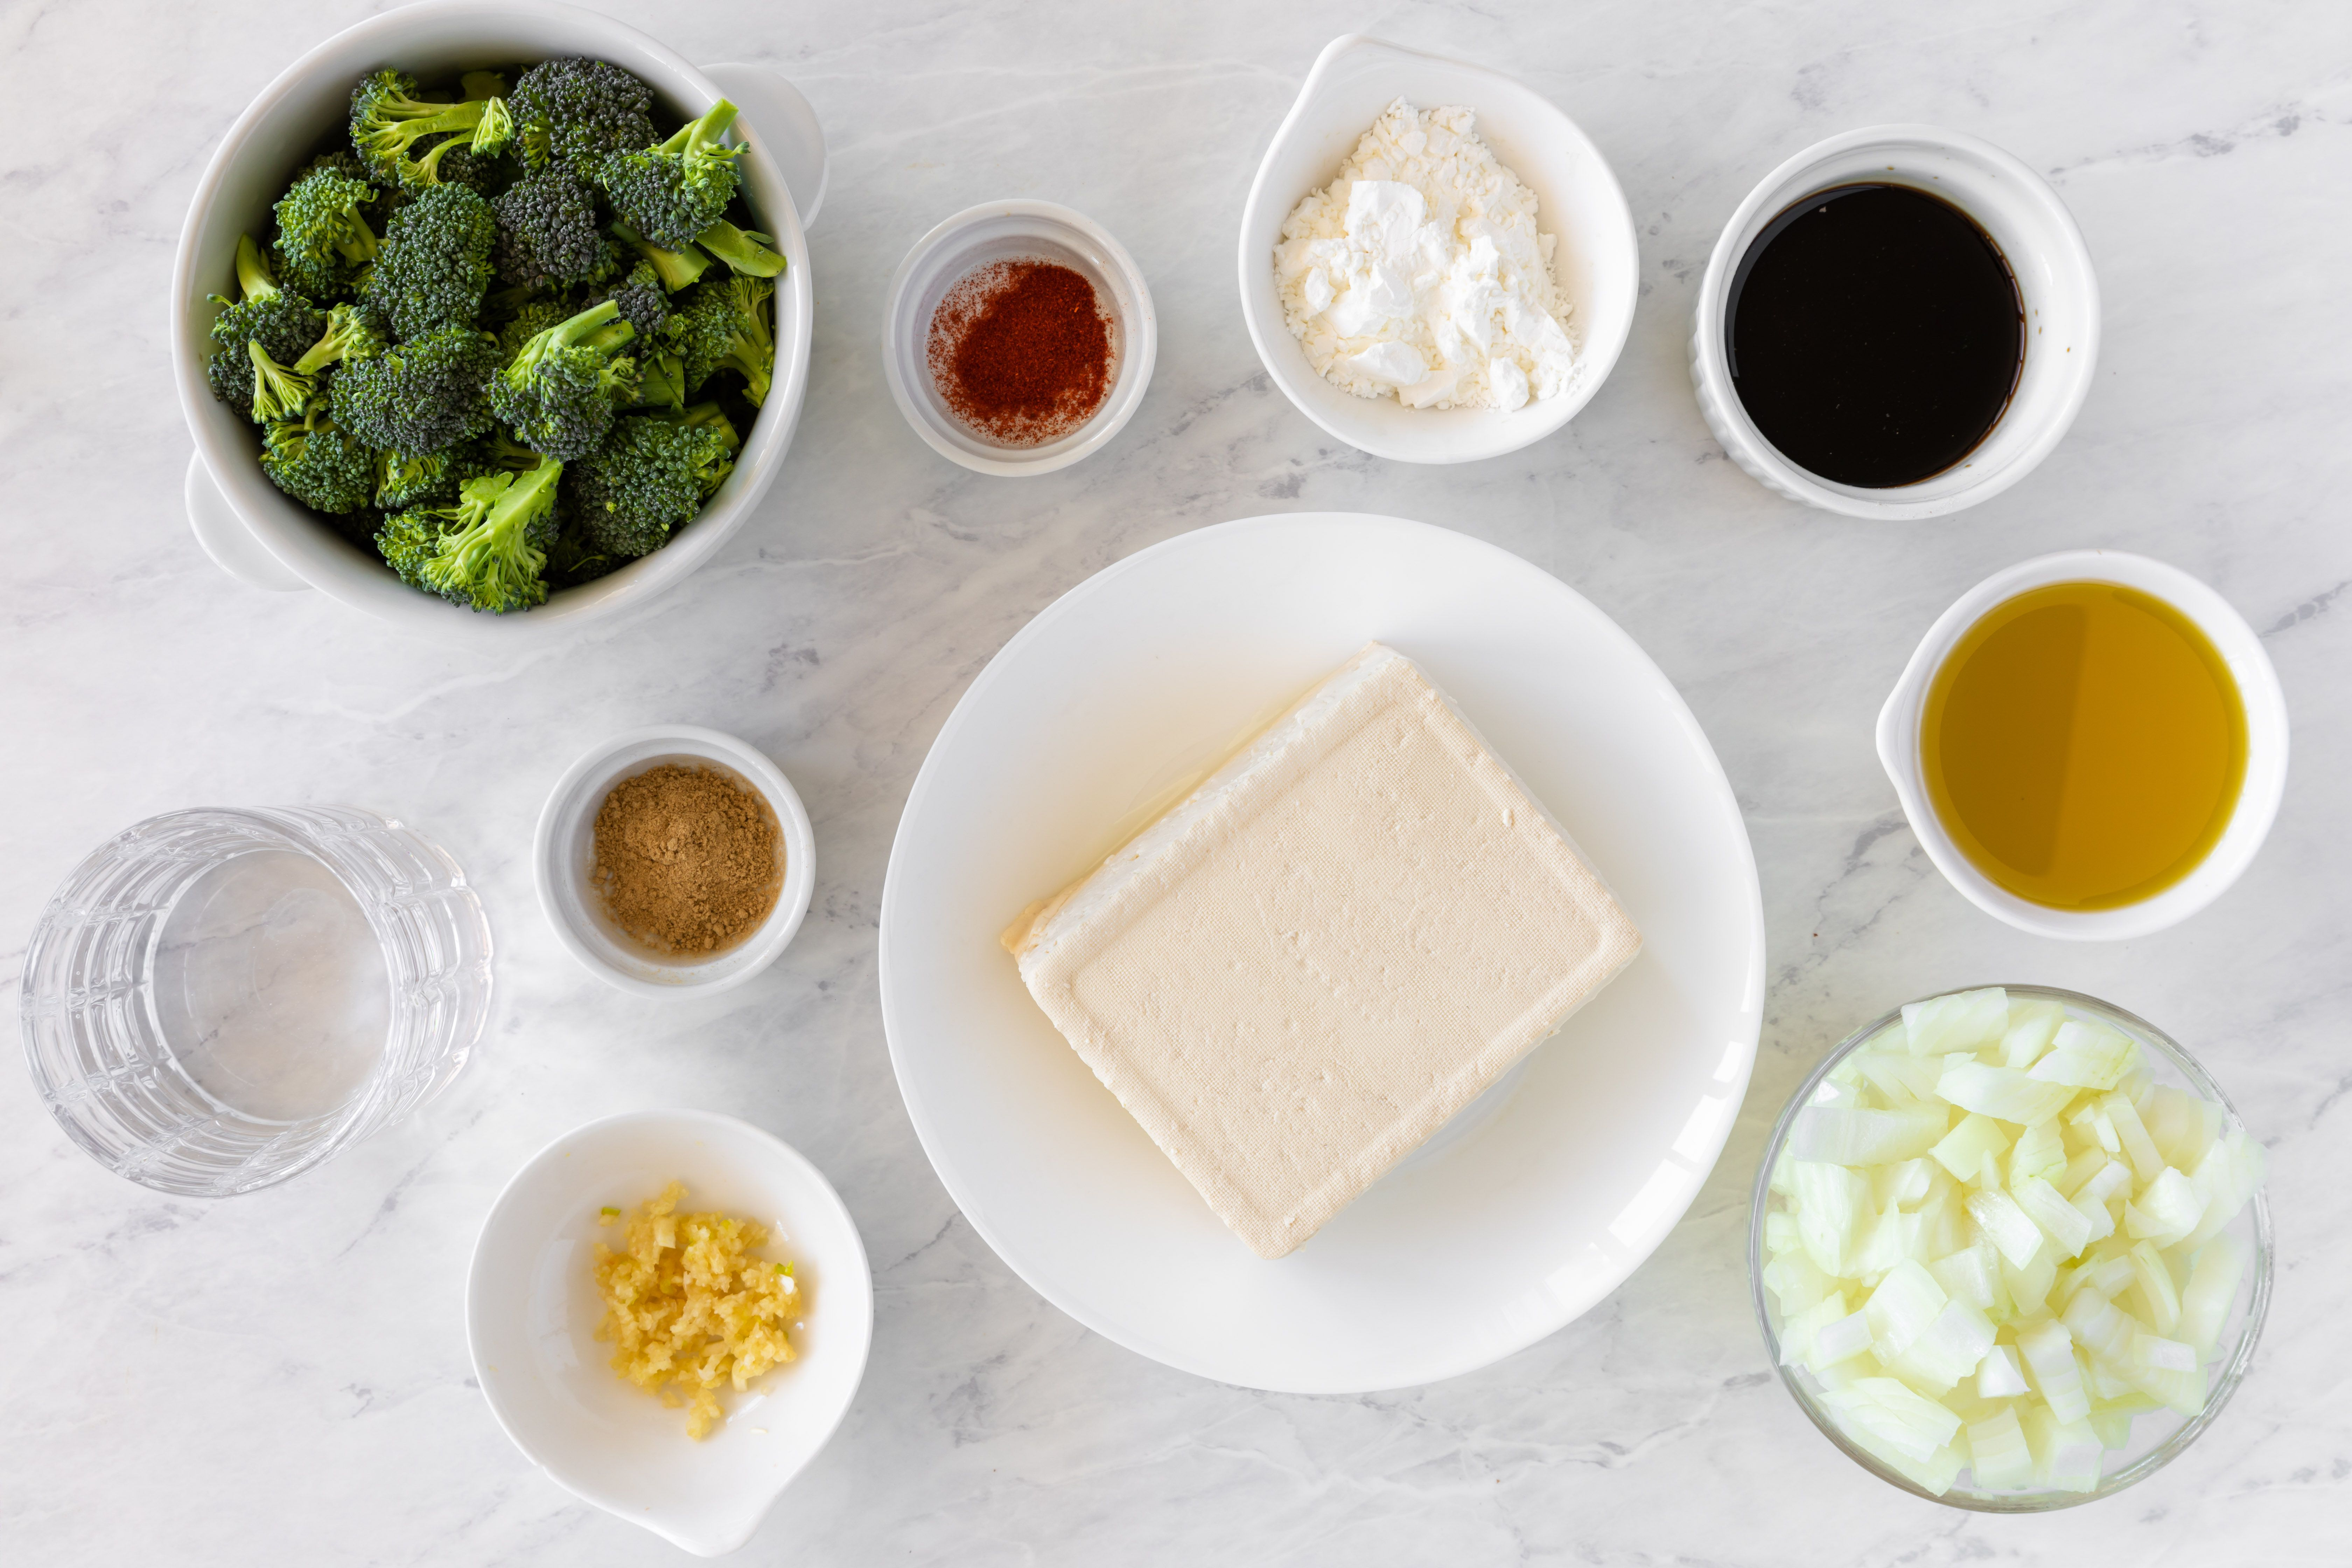 Ingredients for broccoli and tofu in garlic sauce